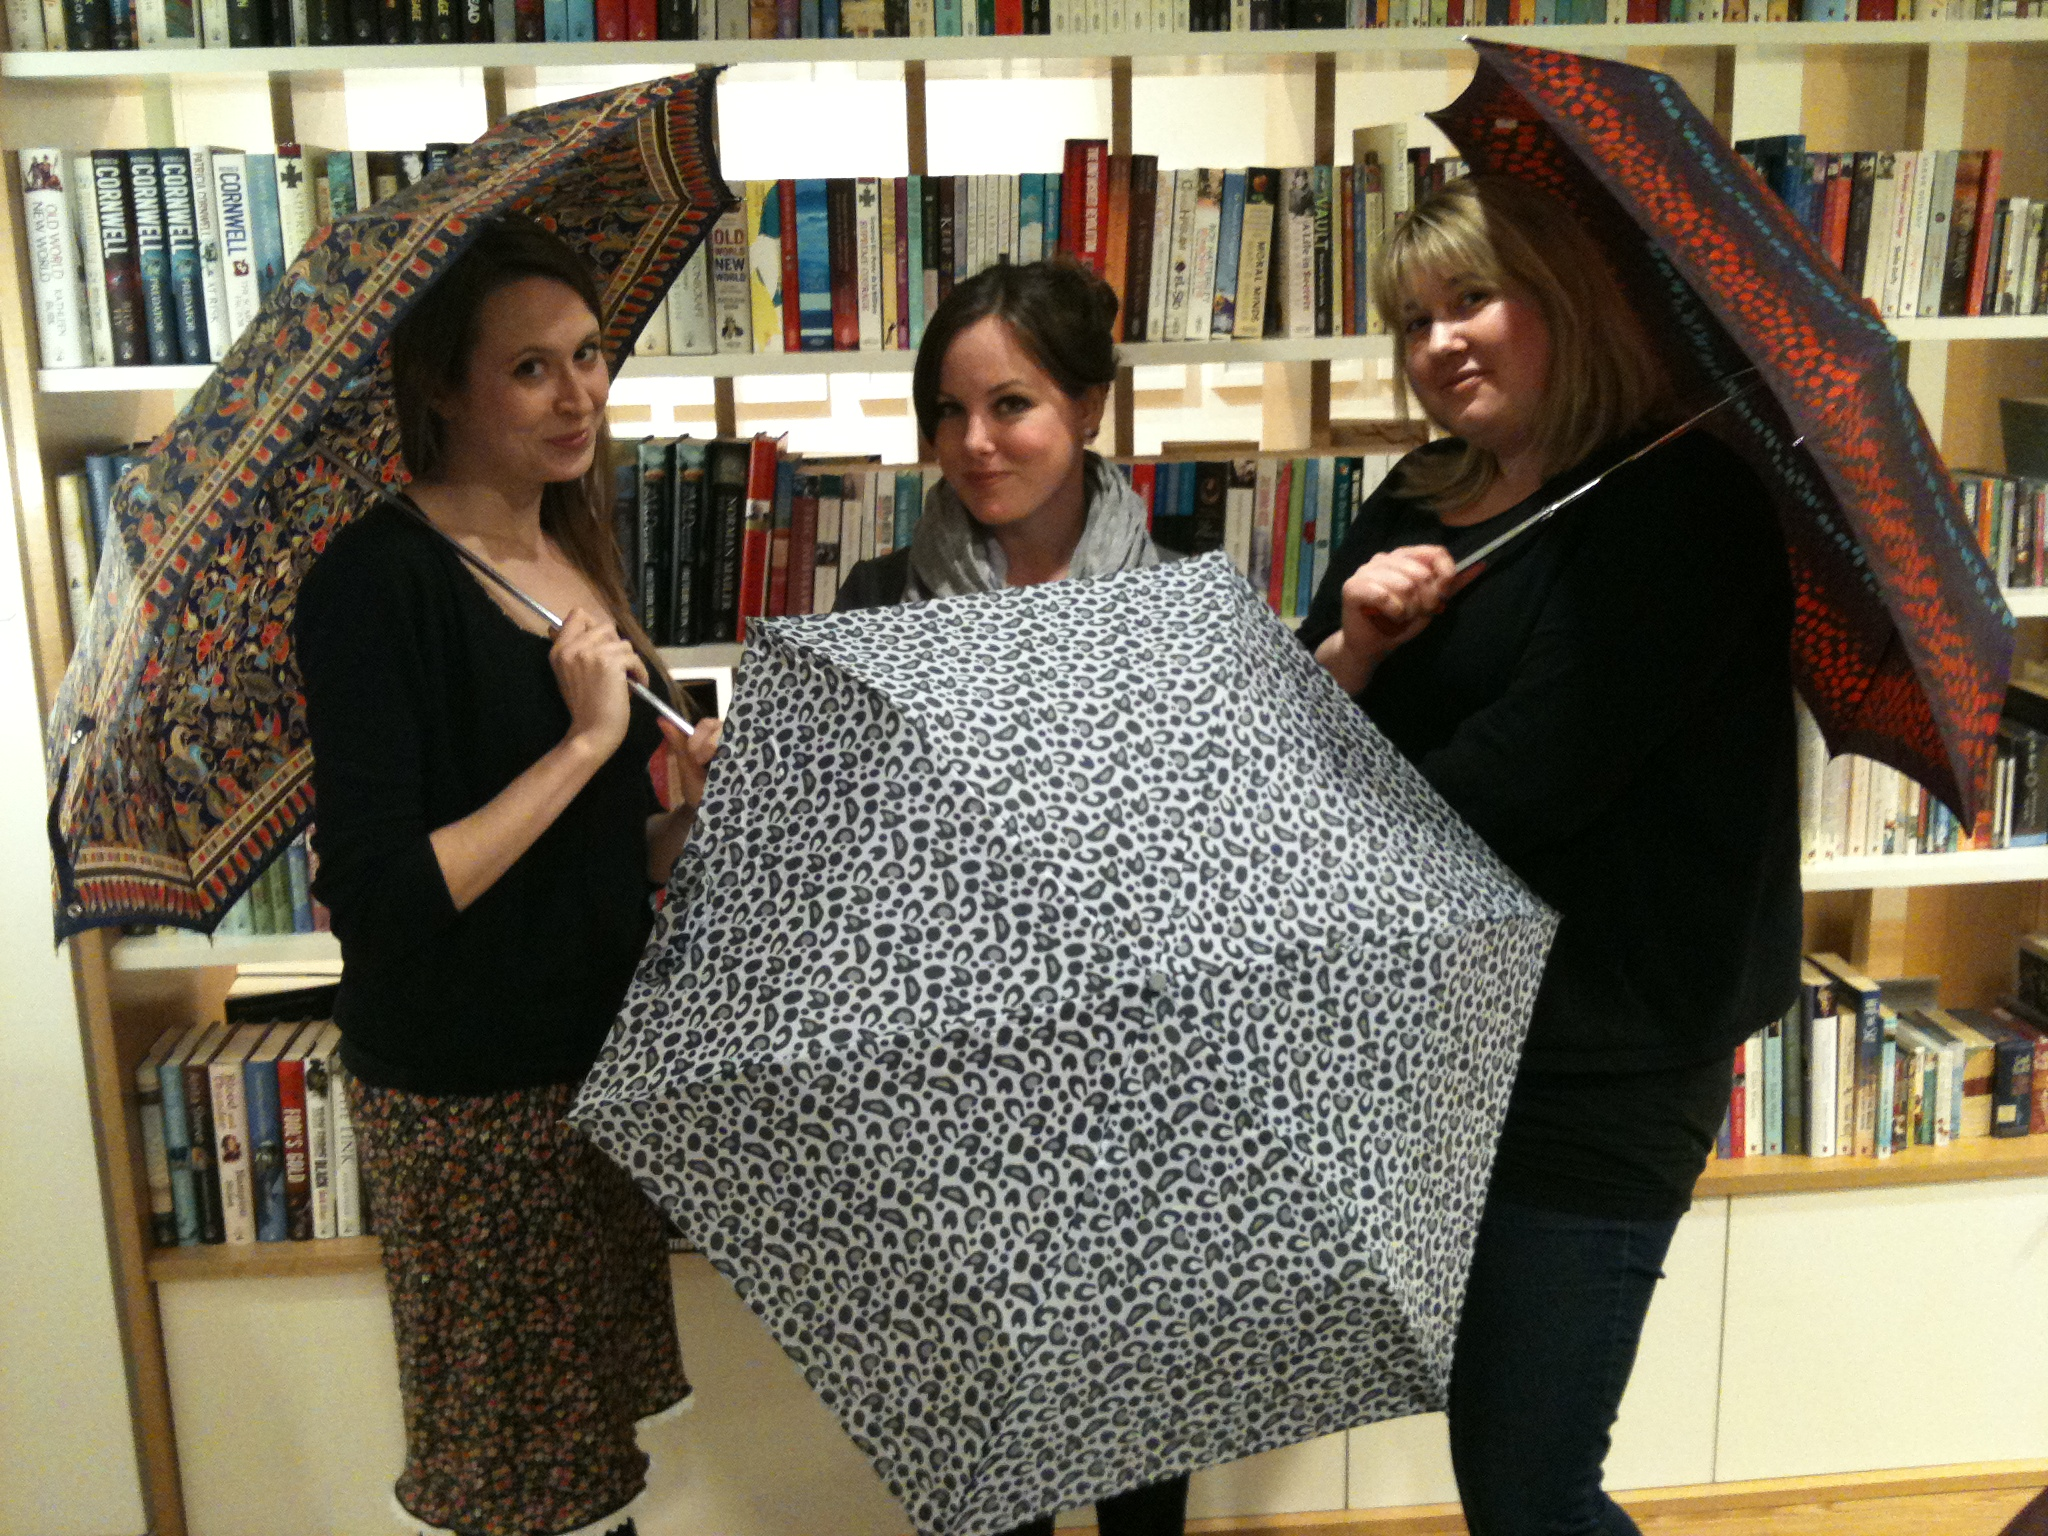 Members Of The Orbit Books Tema Posing With Parasols To Promote The Author  Gail Carriger's Uk